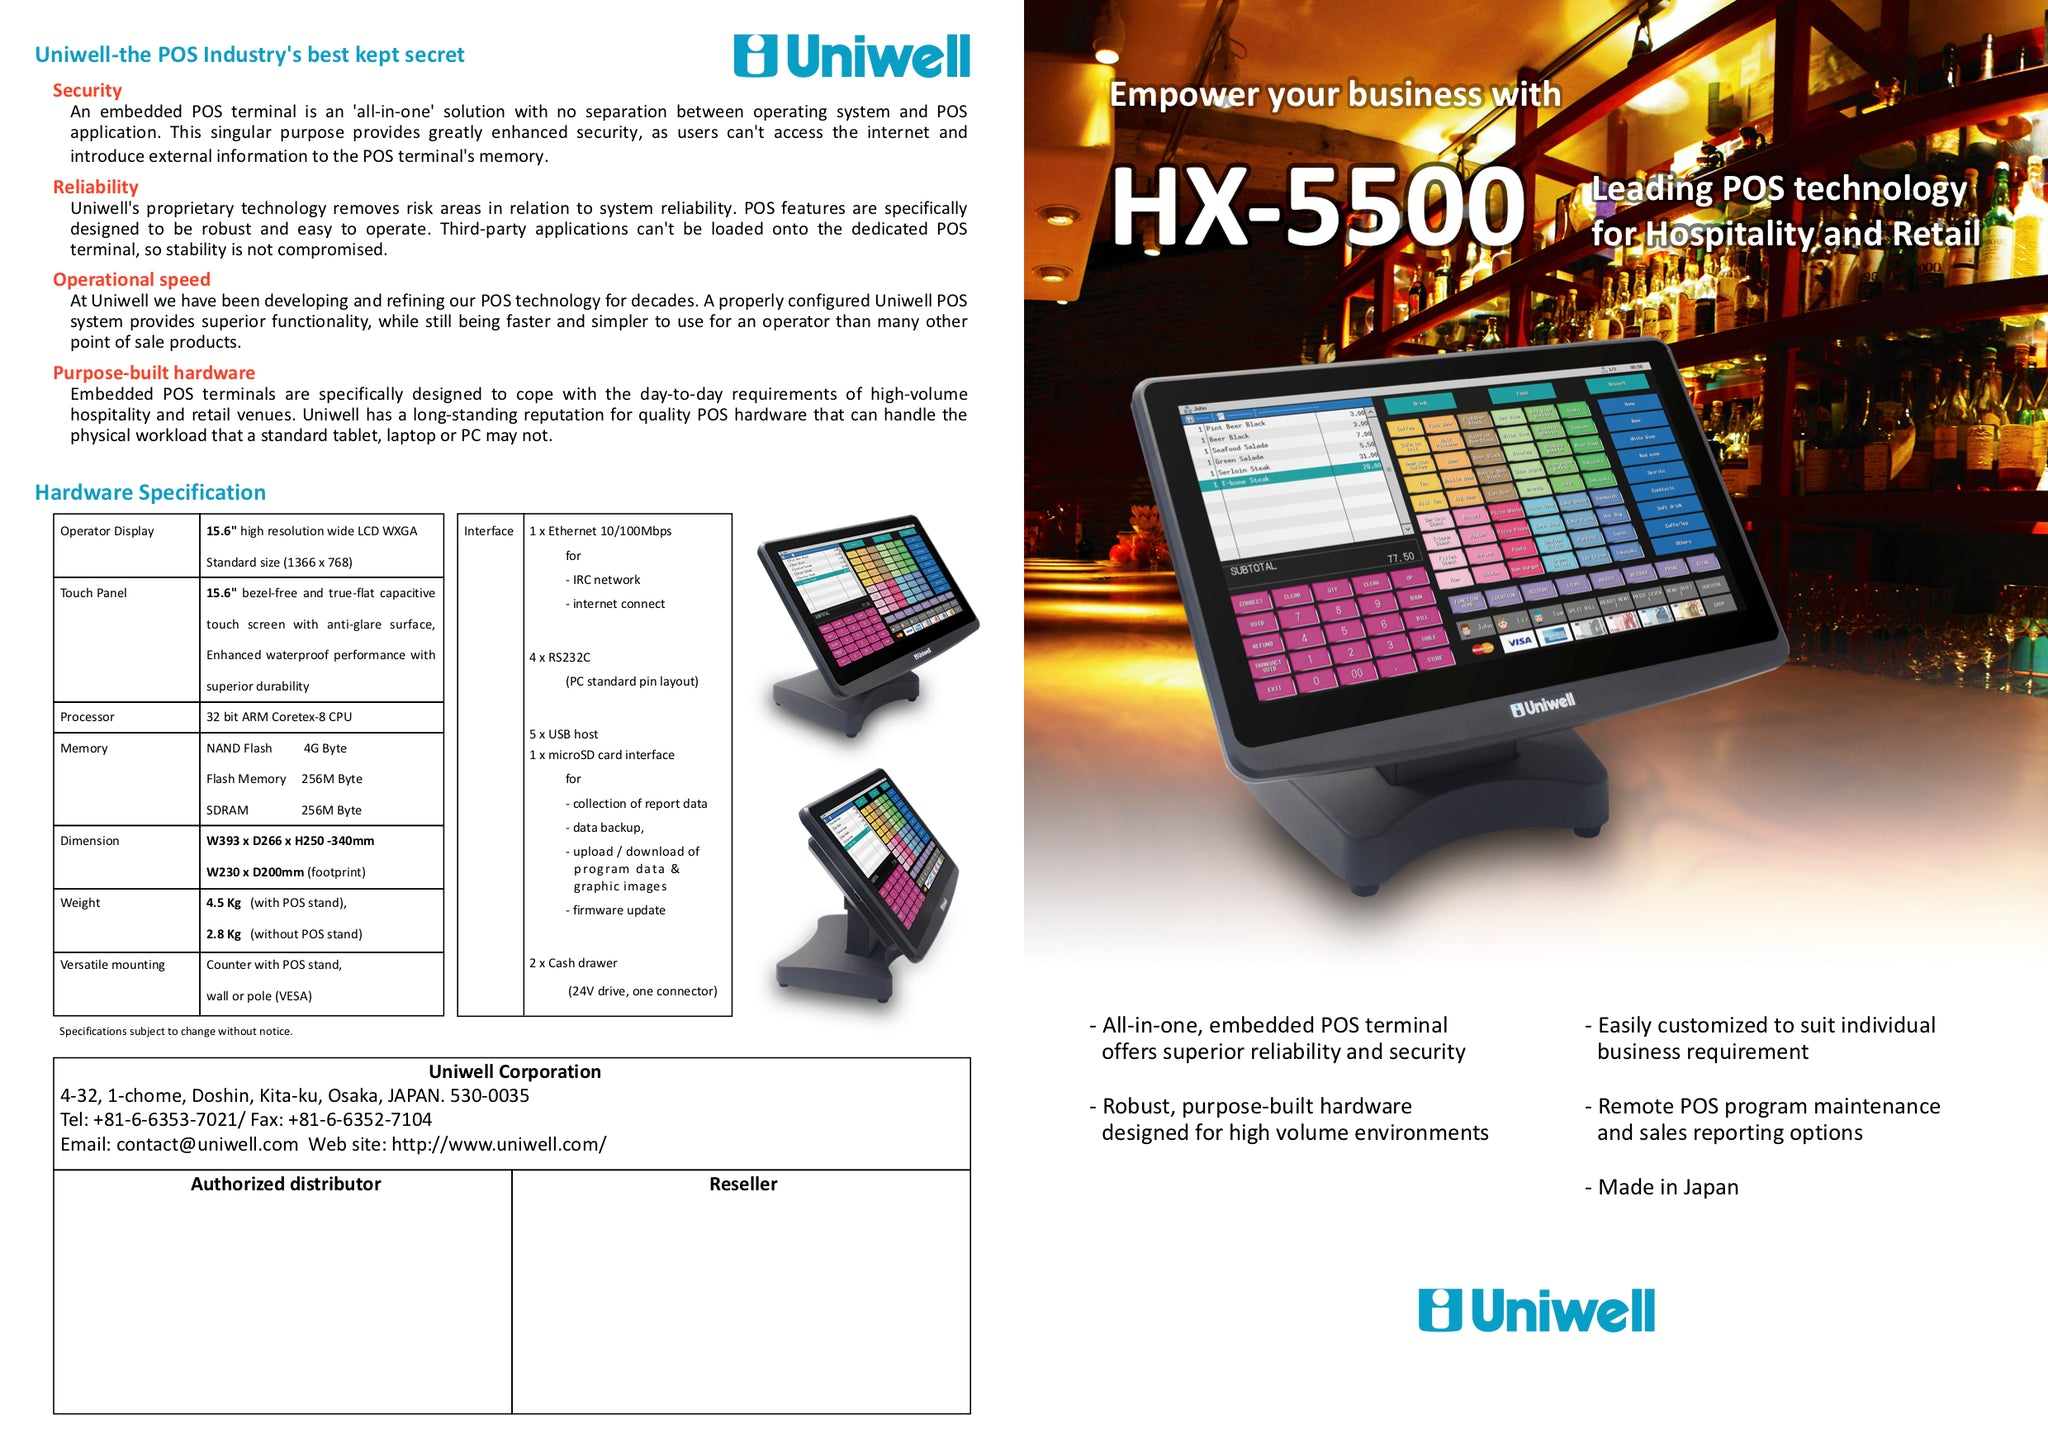 Uniwell Pamphlet 1